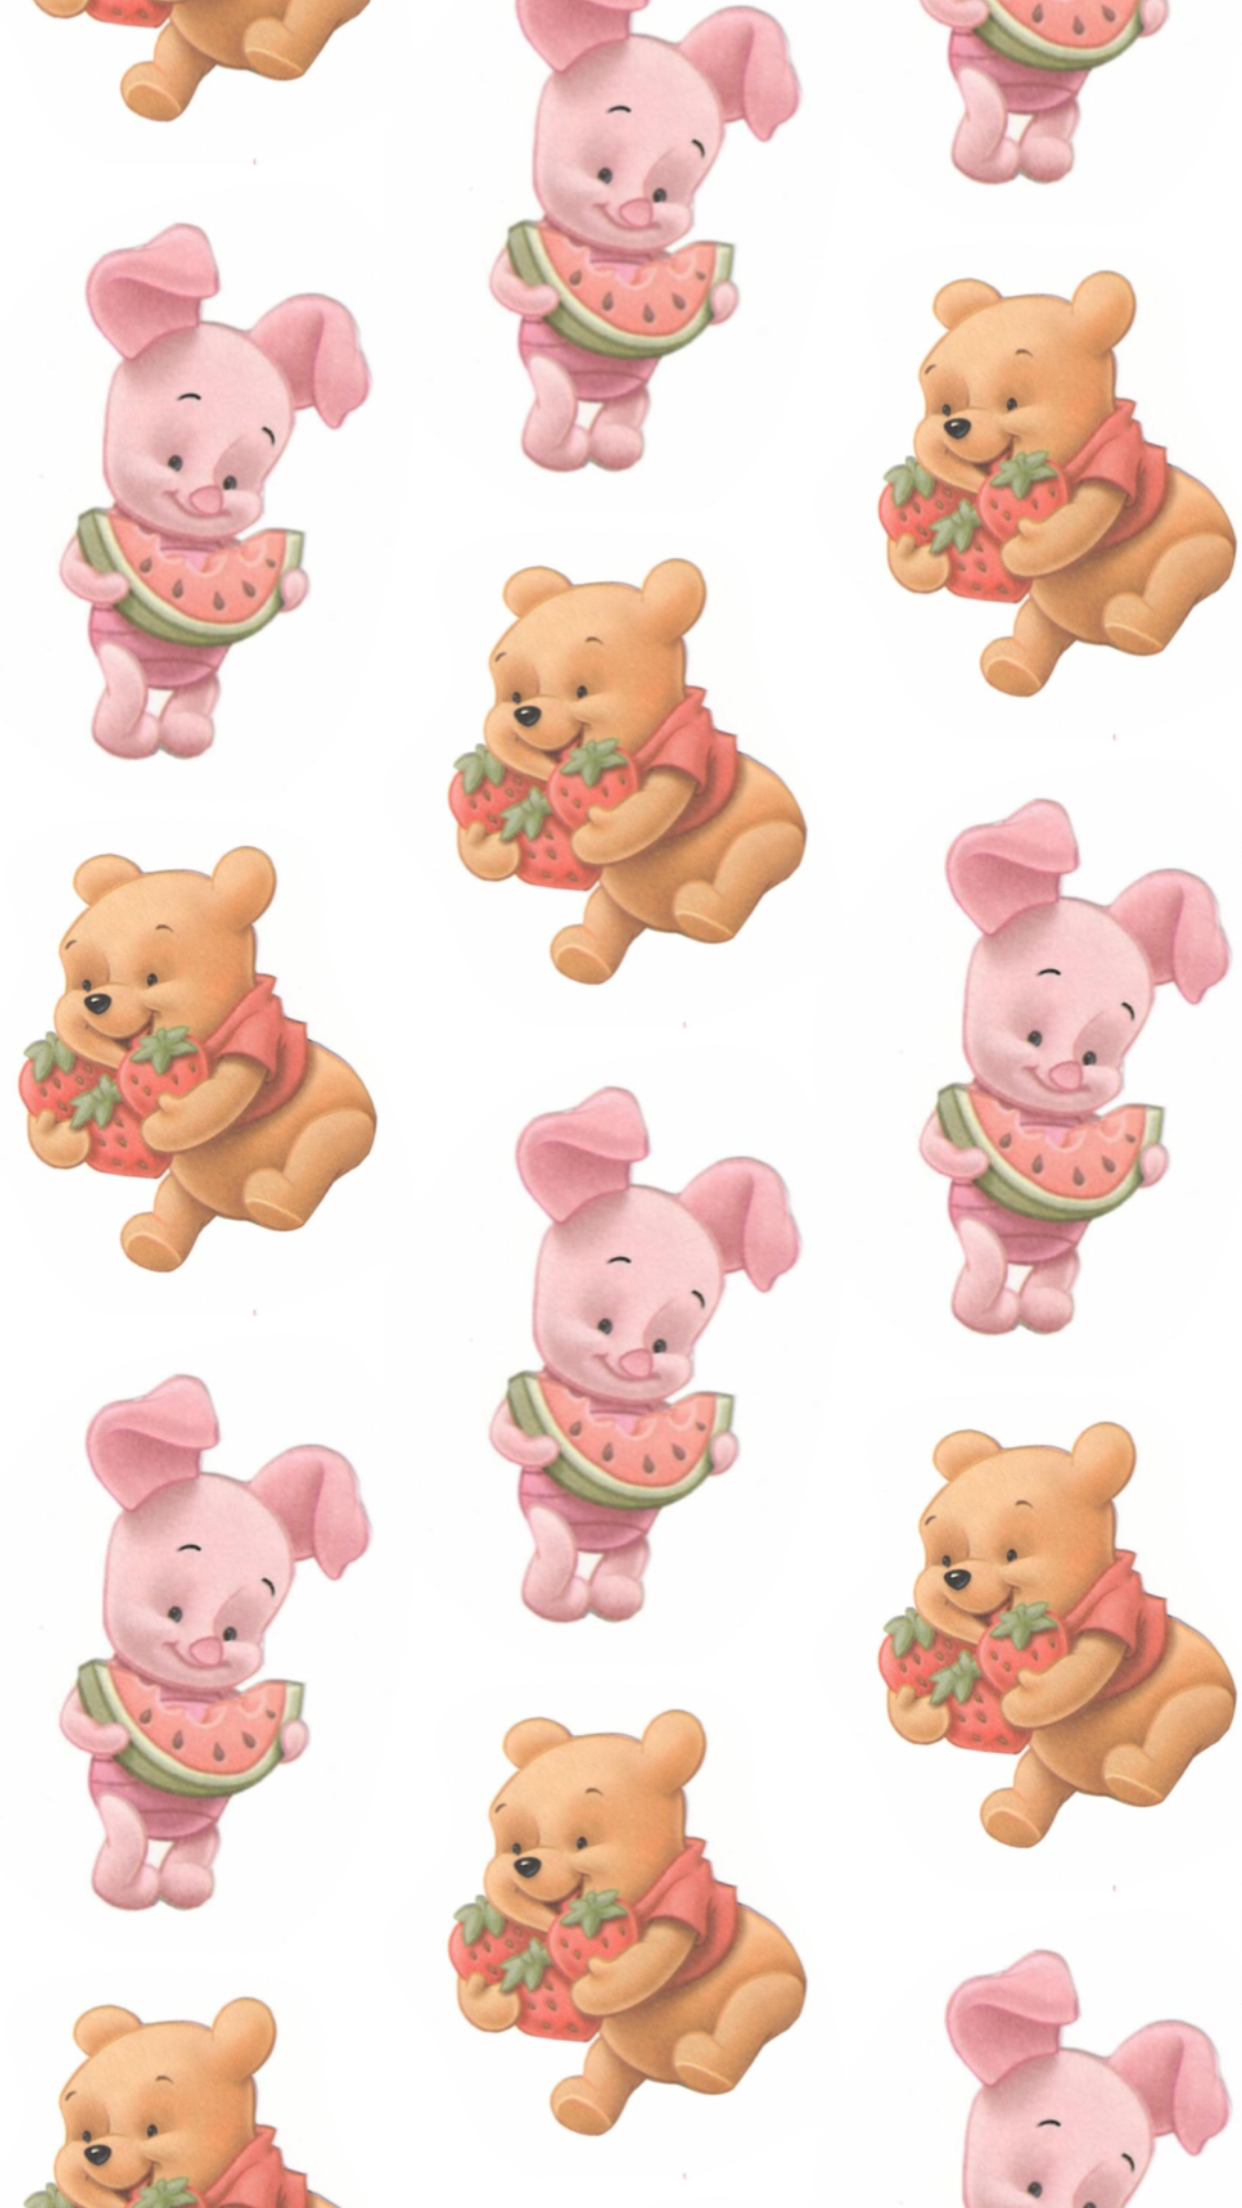 Pooh Piglet Cute Wallpapers Cartoon Wallpaper Winnie The